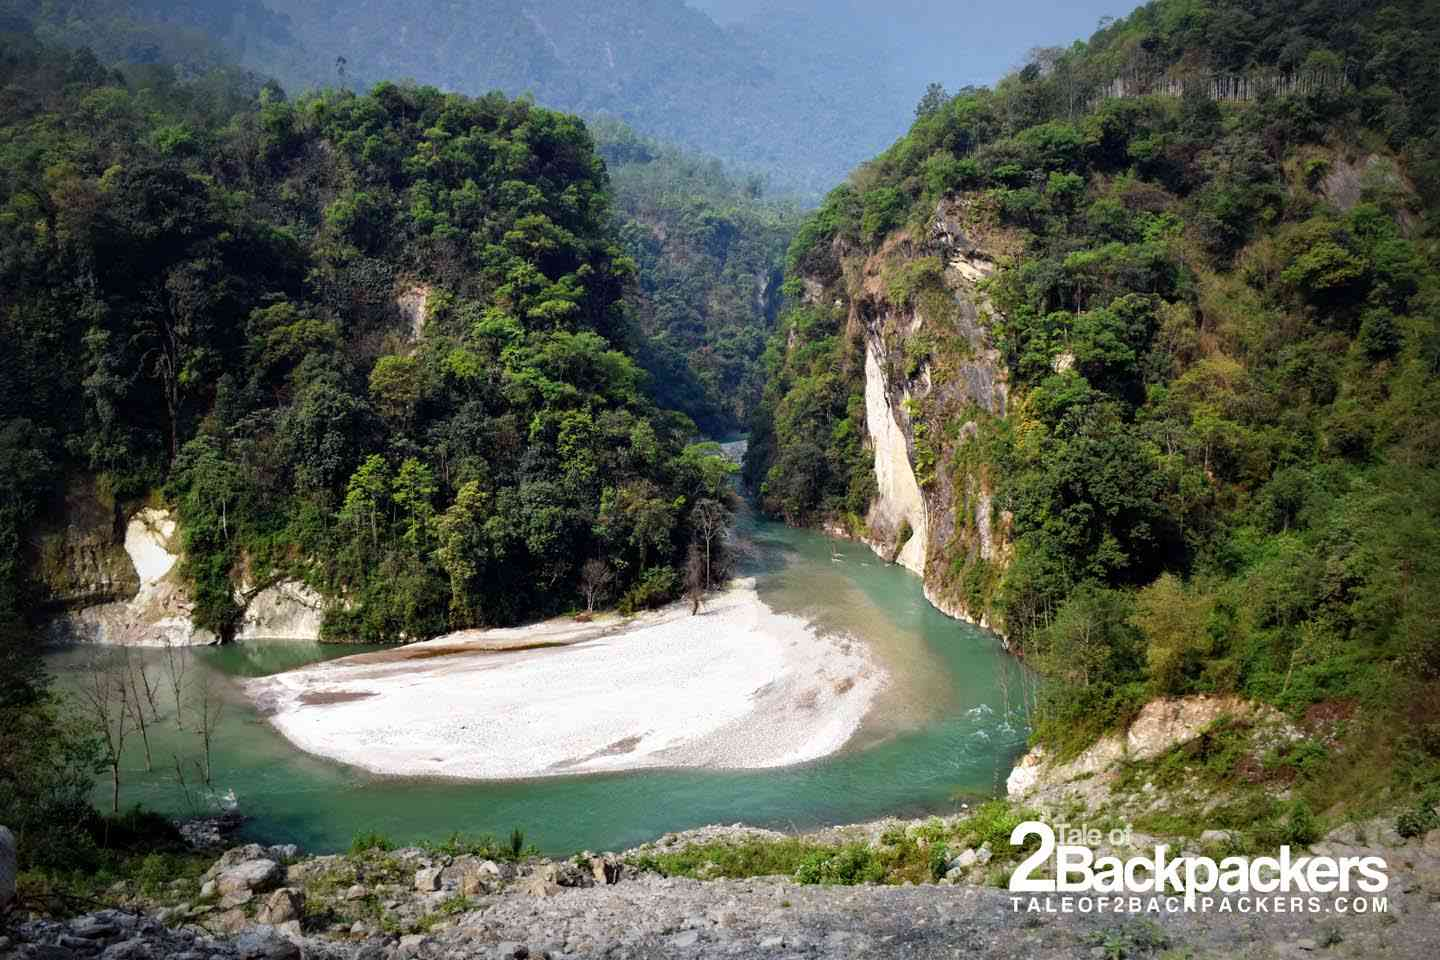 The Teesta river changed its course after landslide in dzongu